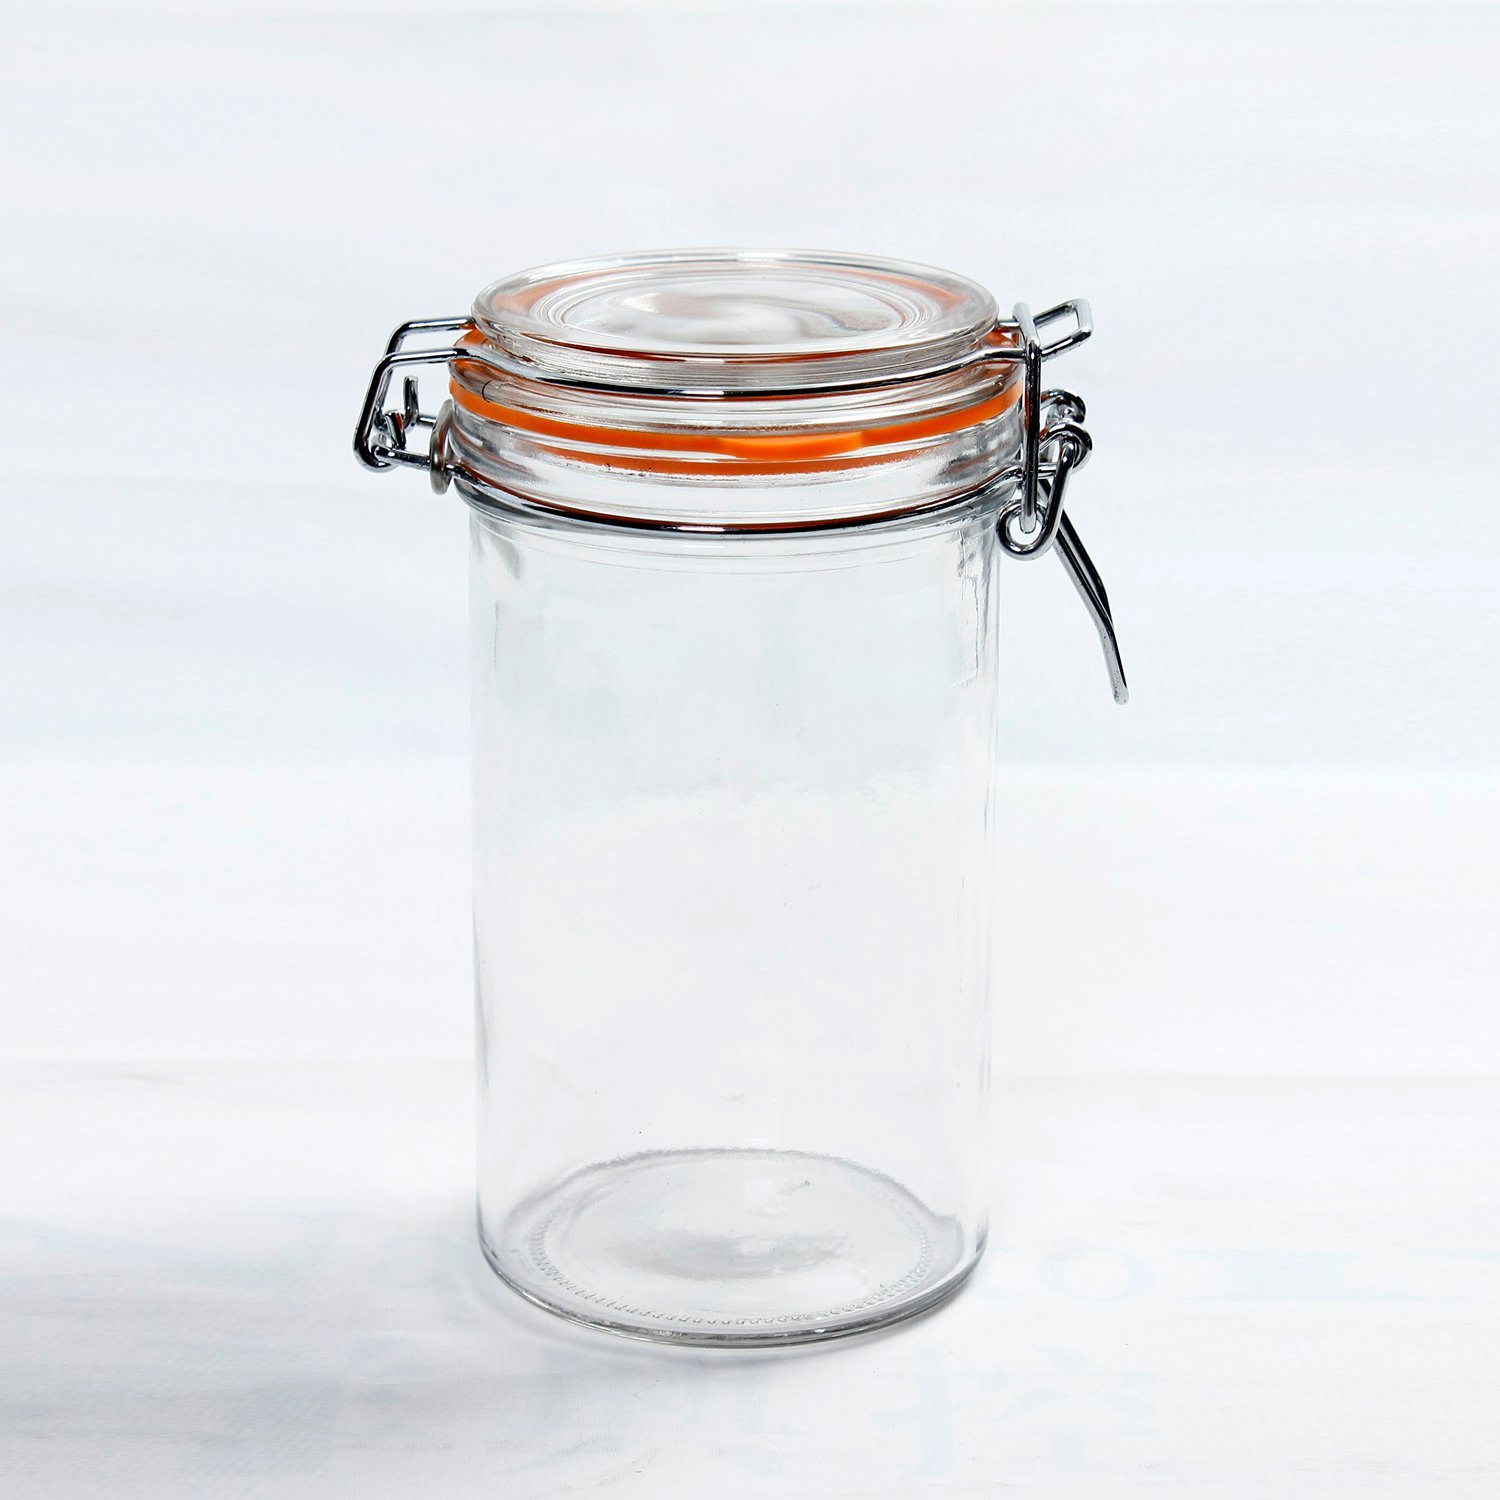 4.4oz 7.0oz 8.8oz 14.1oz Small Glass Jar Storage Glassbottle pictures & photos